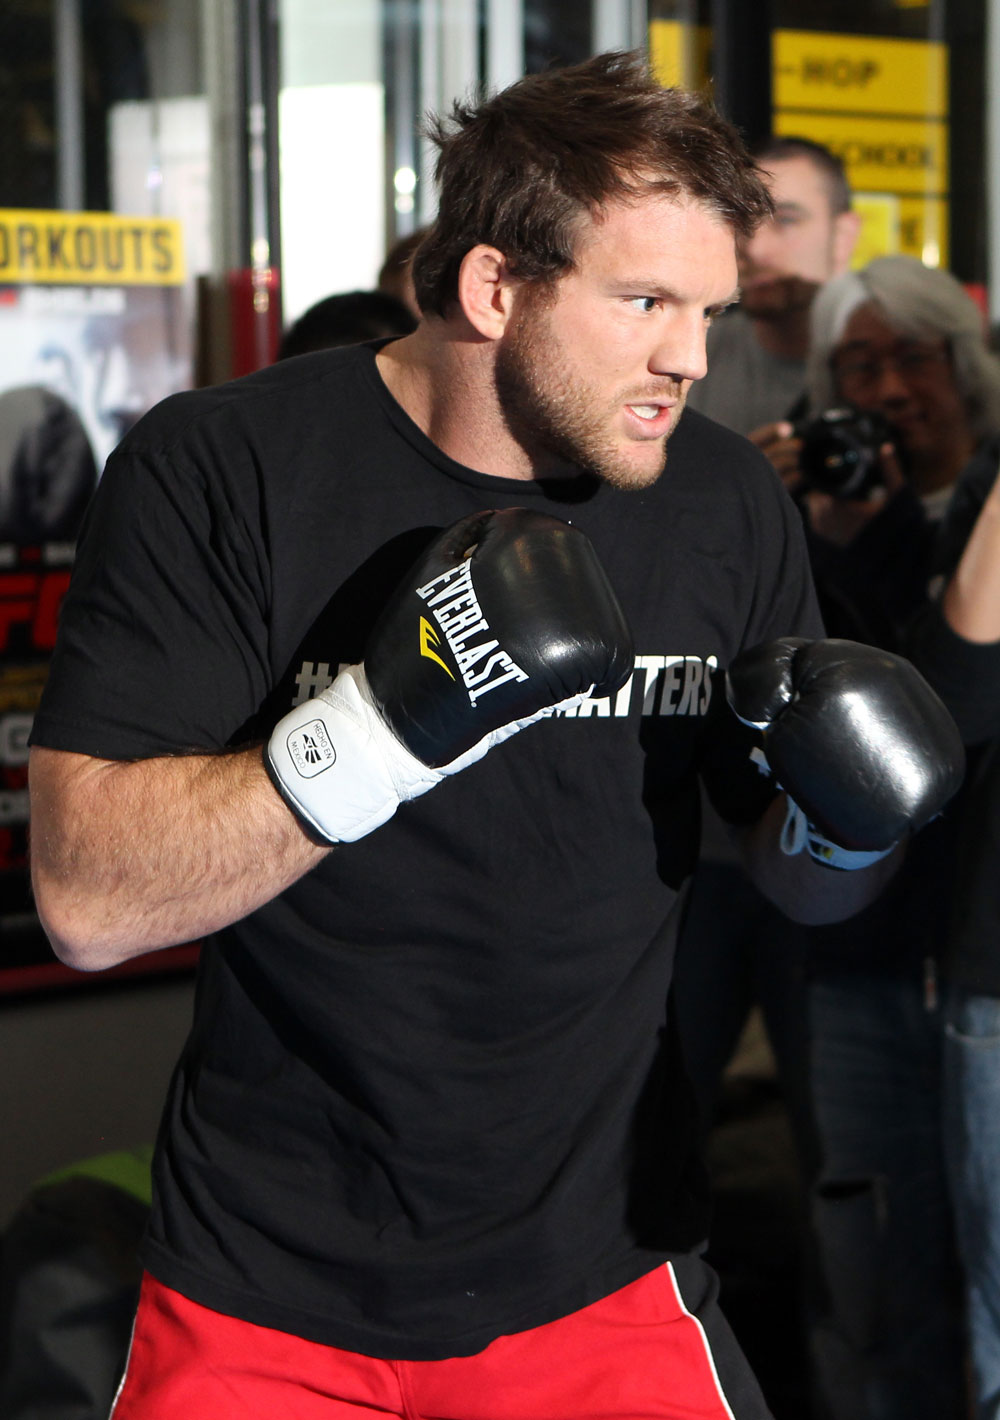 TOKYO, JAPAN - FEBRUARY 22:  Ryan Bader works out for the media during the UFC 144 open workouts at Gold's Gym on February 22, 2012 in Tokyo, Japan.  (Photo by Josh Hedges/Zuffa LLC/Zuffa LLC via Getty Images) *** Local Caption *** Ryan Bader